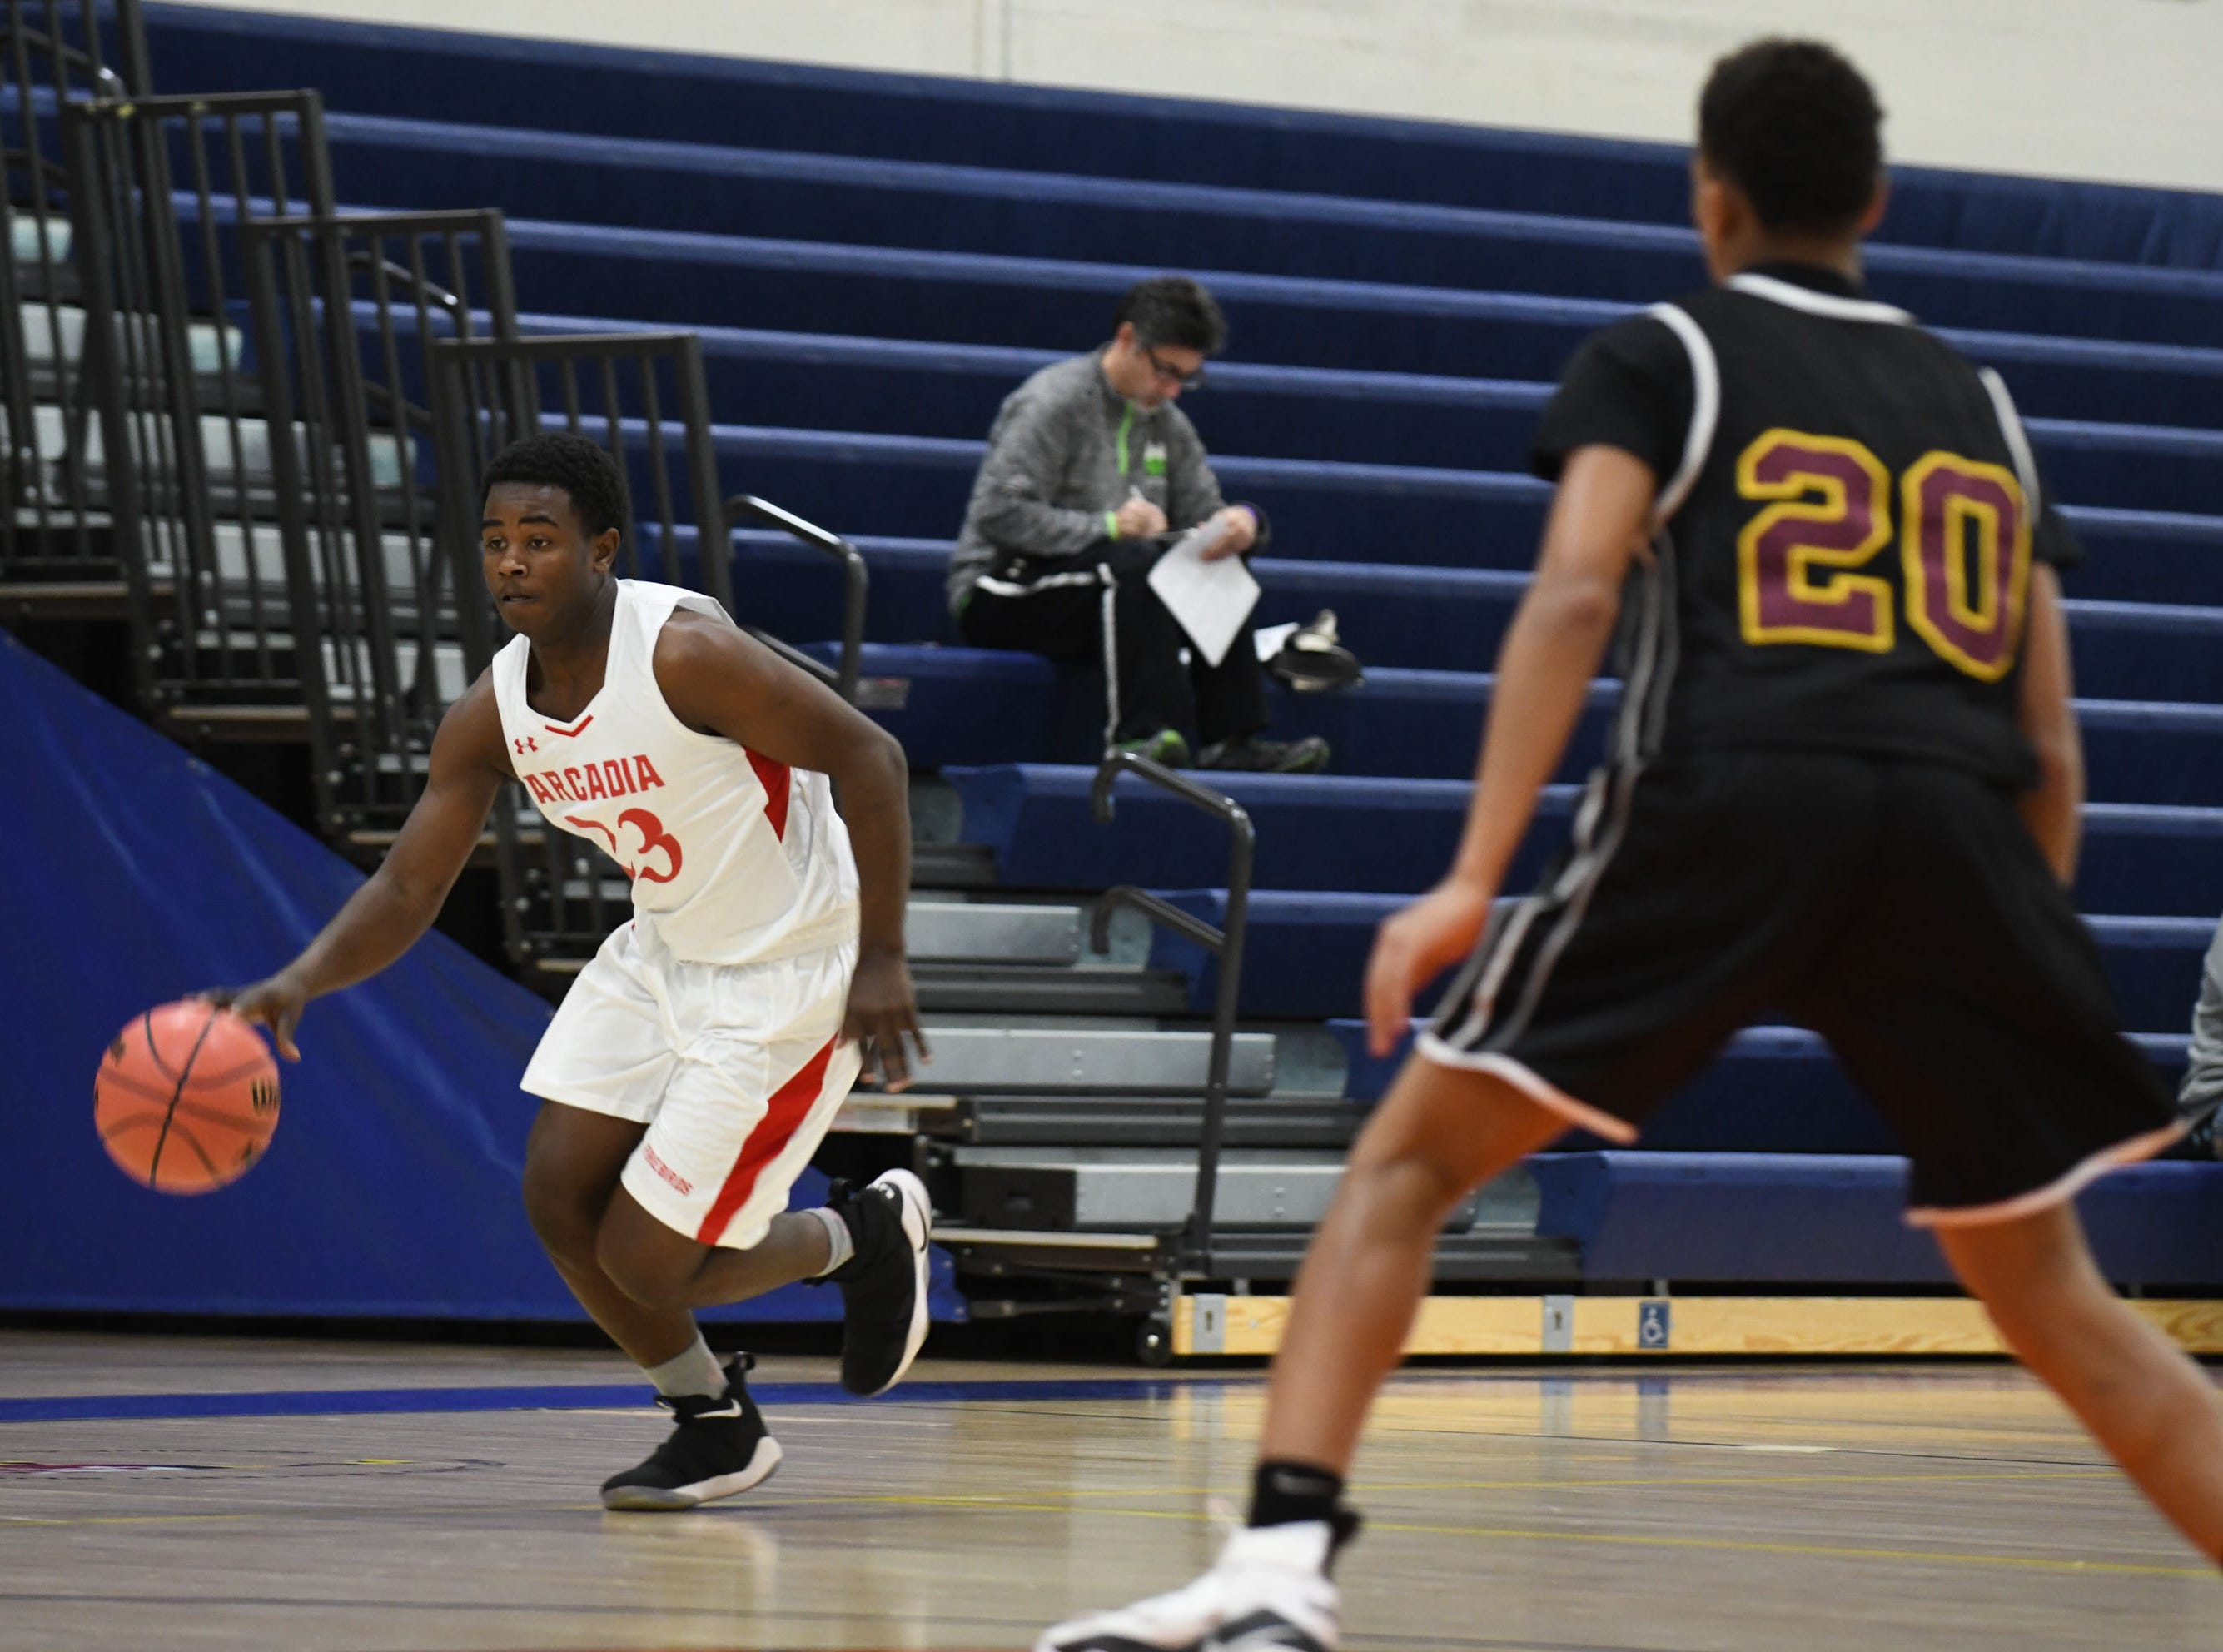 Arcadia's Kamron Downing brings the ball down the court against Washington High School on Wednesday, Dec. 26, 2018 during the Governors Challenge in Salisbury, Md.